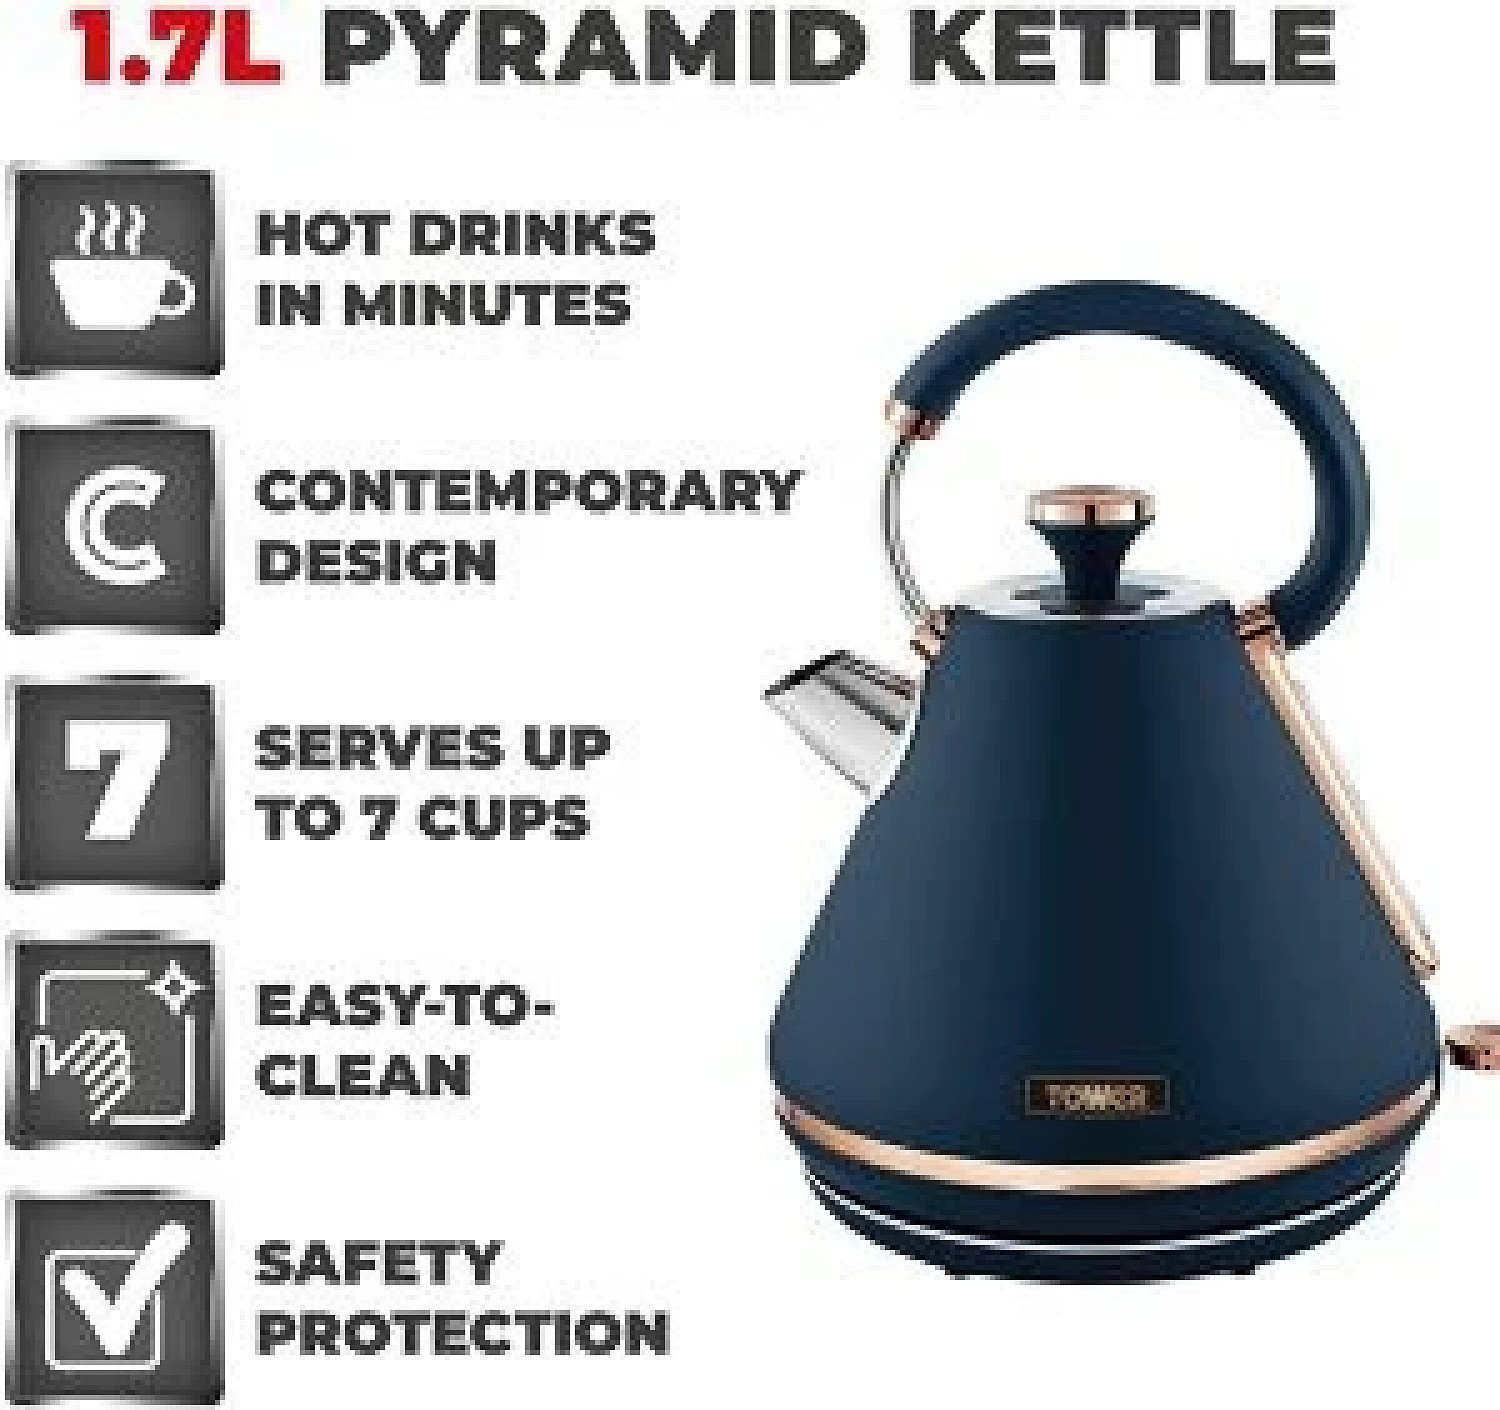 Tower Cavaletto 1.7L 3000W Pyramid Kettle - Blue/Rose Gold Free Postage